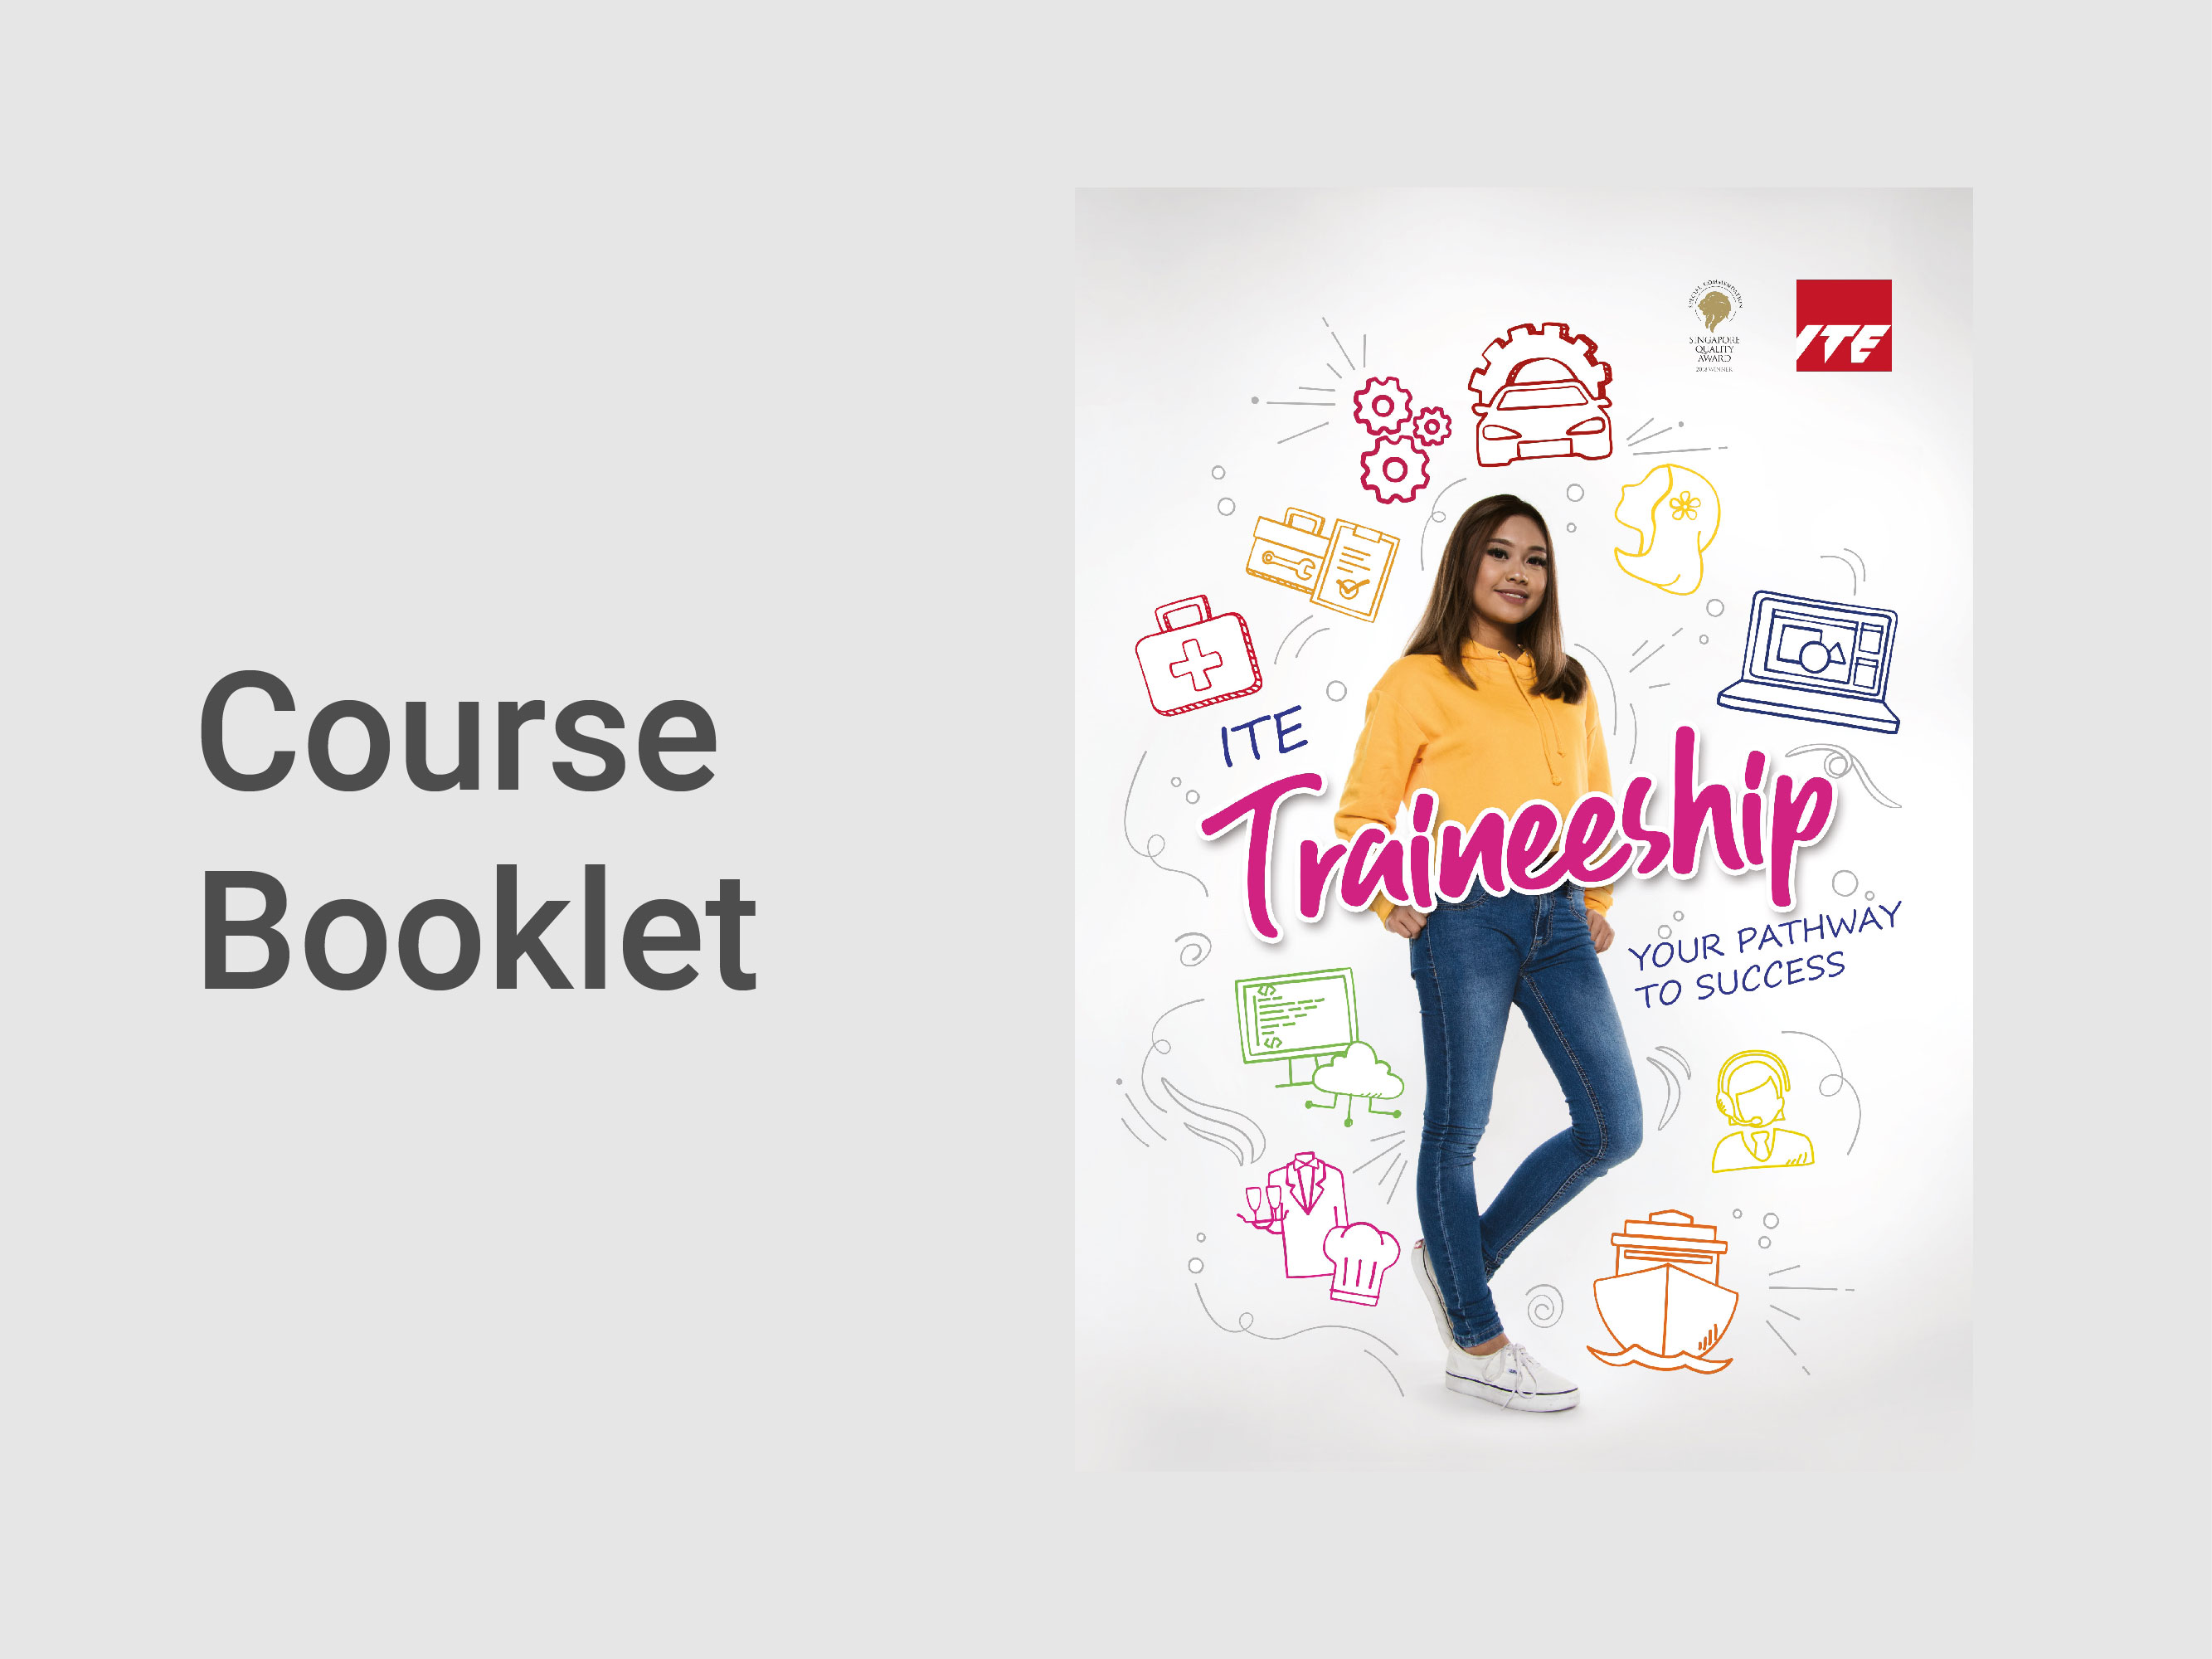 ITE Traineeship Course Booklet